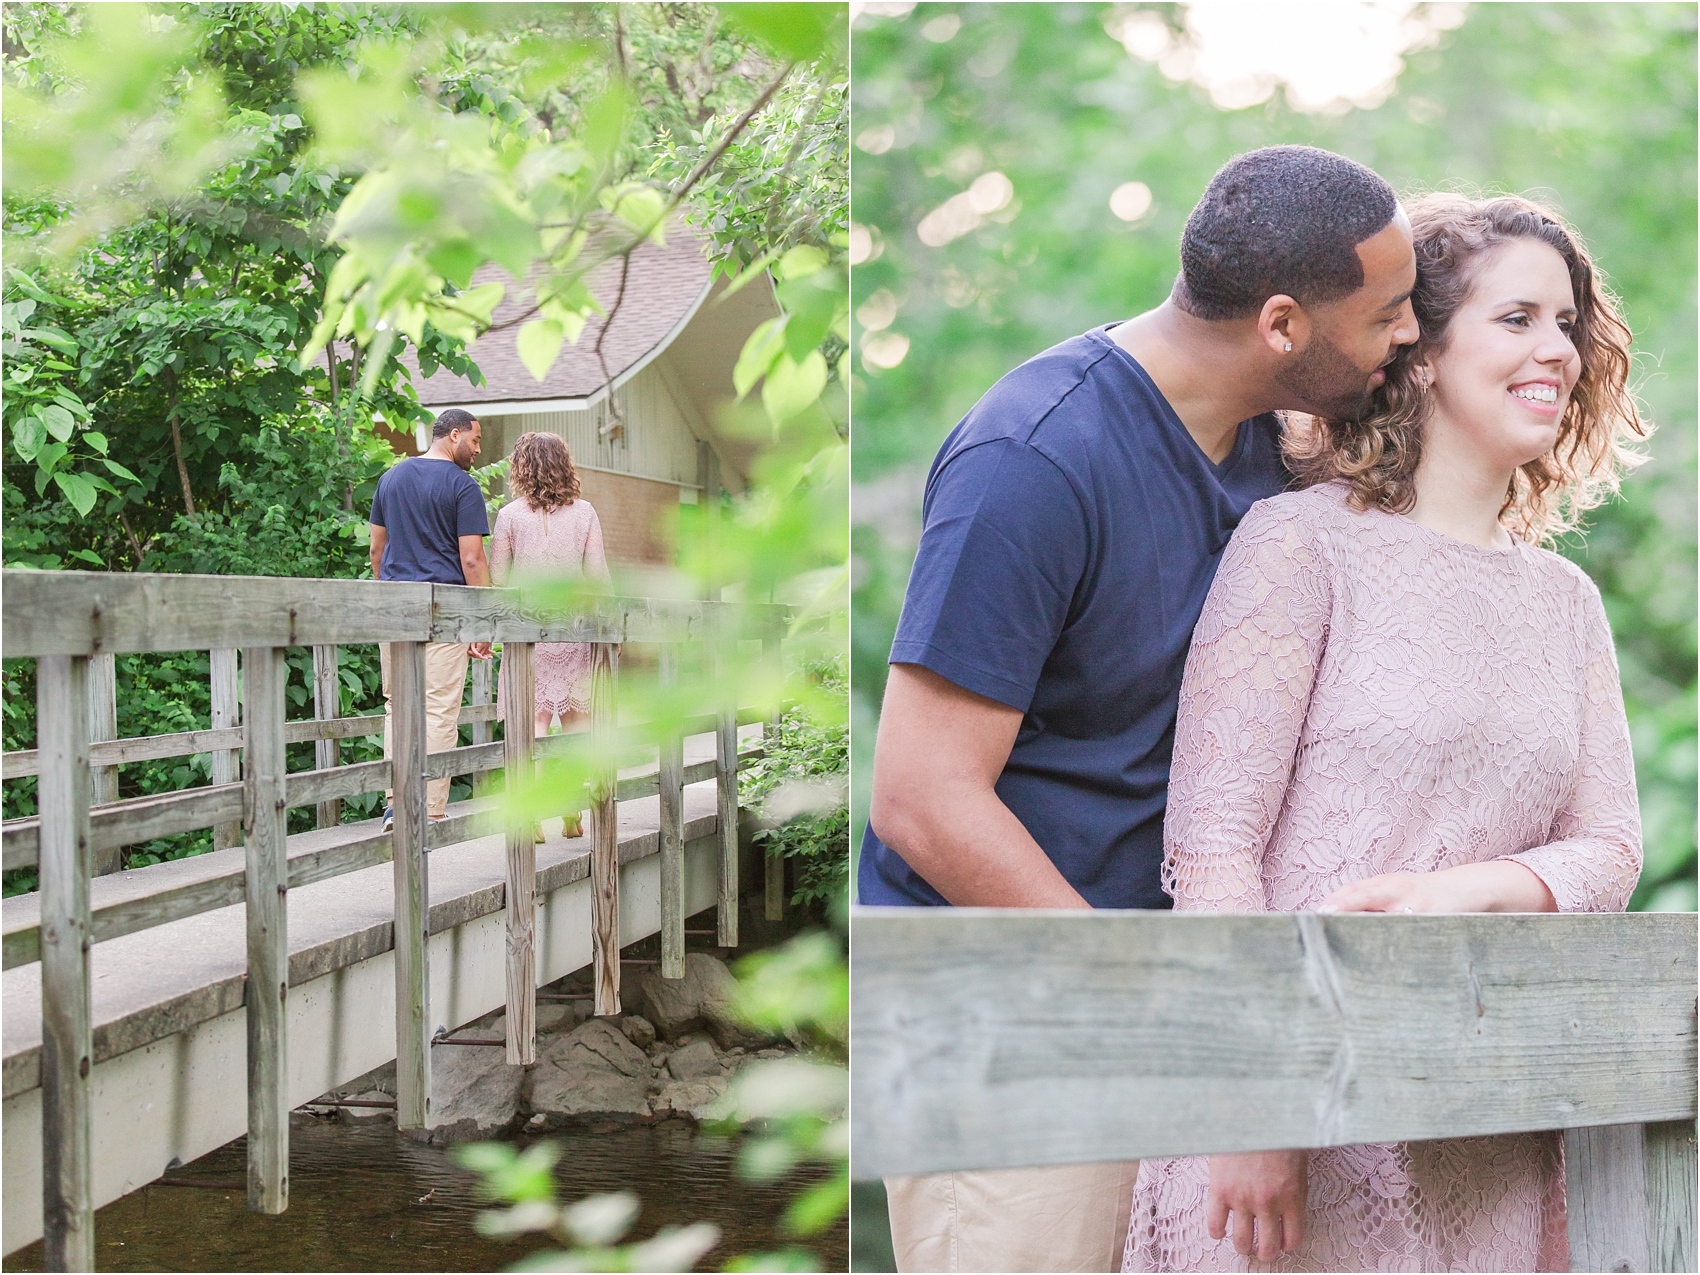 romantic-fun-university-of-michigan-engagement-photos-in-ann-arbor-mi-by-courtney-carolyn-photography_0050.jpg